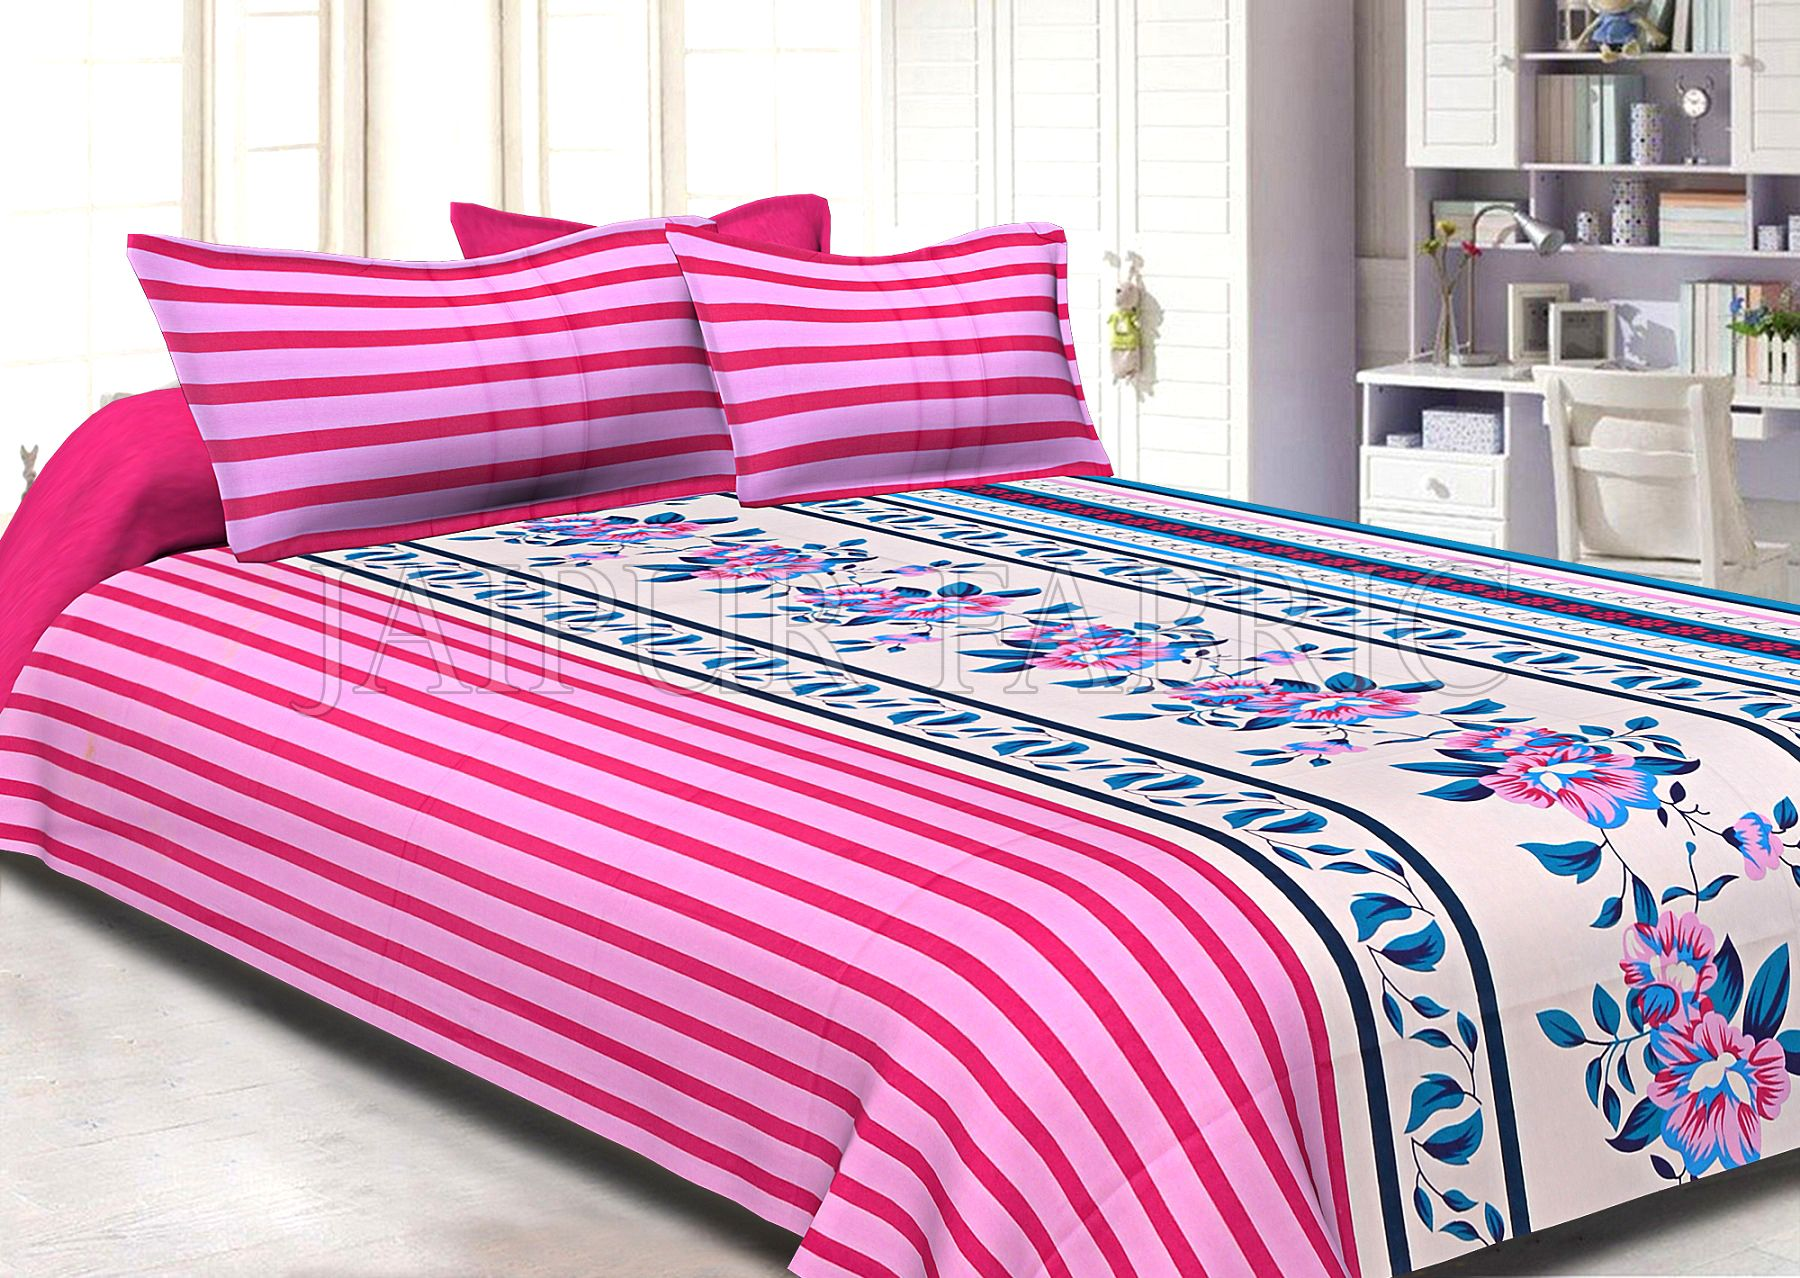 Pink Slanting Stripes with Blue Border Cotton Double Bed Sheet